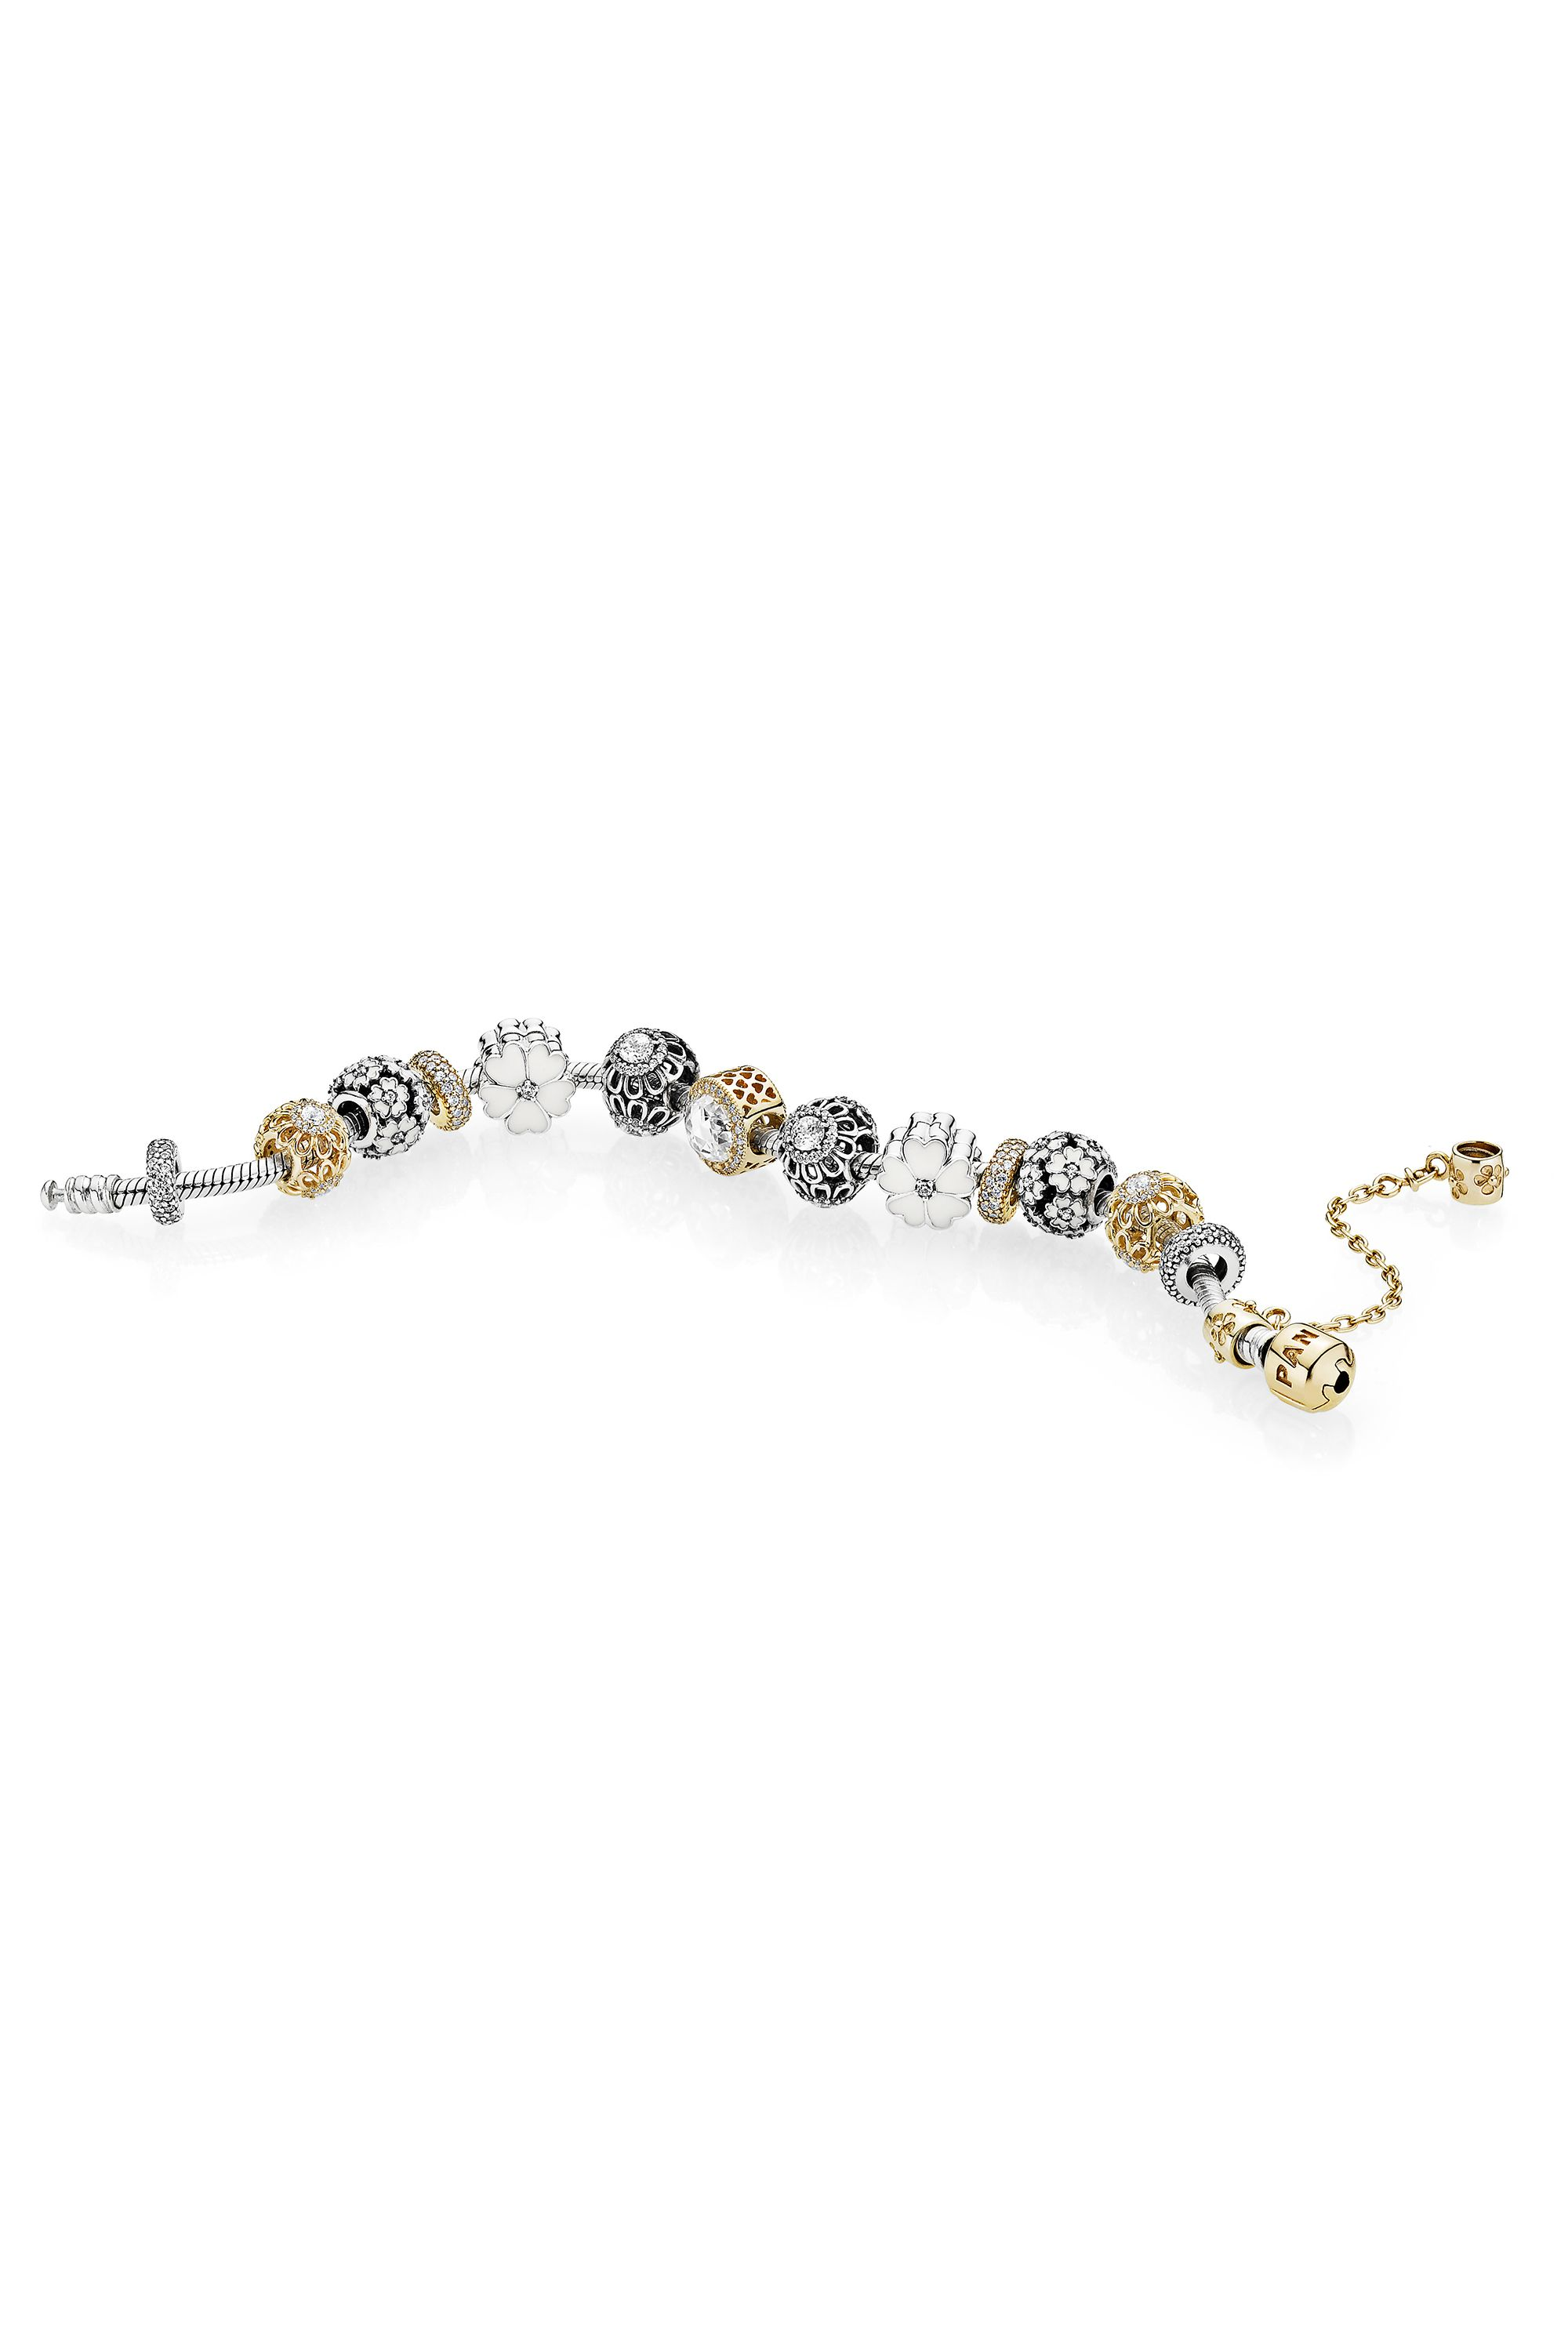 10 classic pieces of jewellery every woman should own - Cartier ...